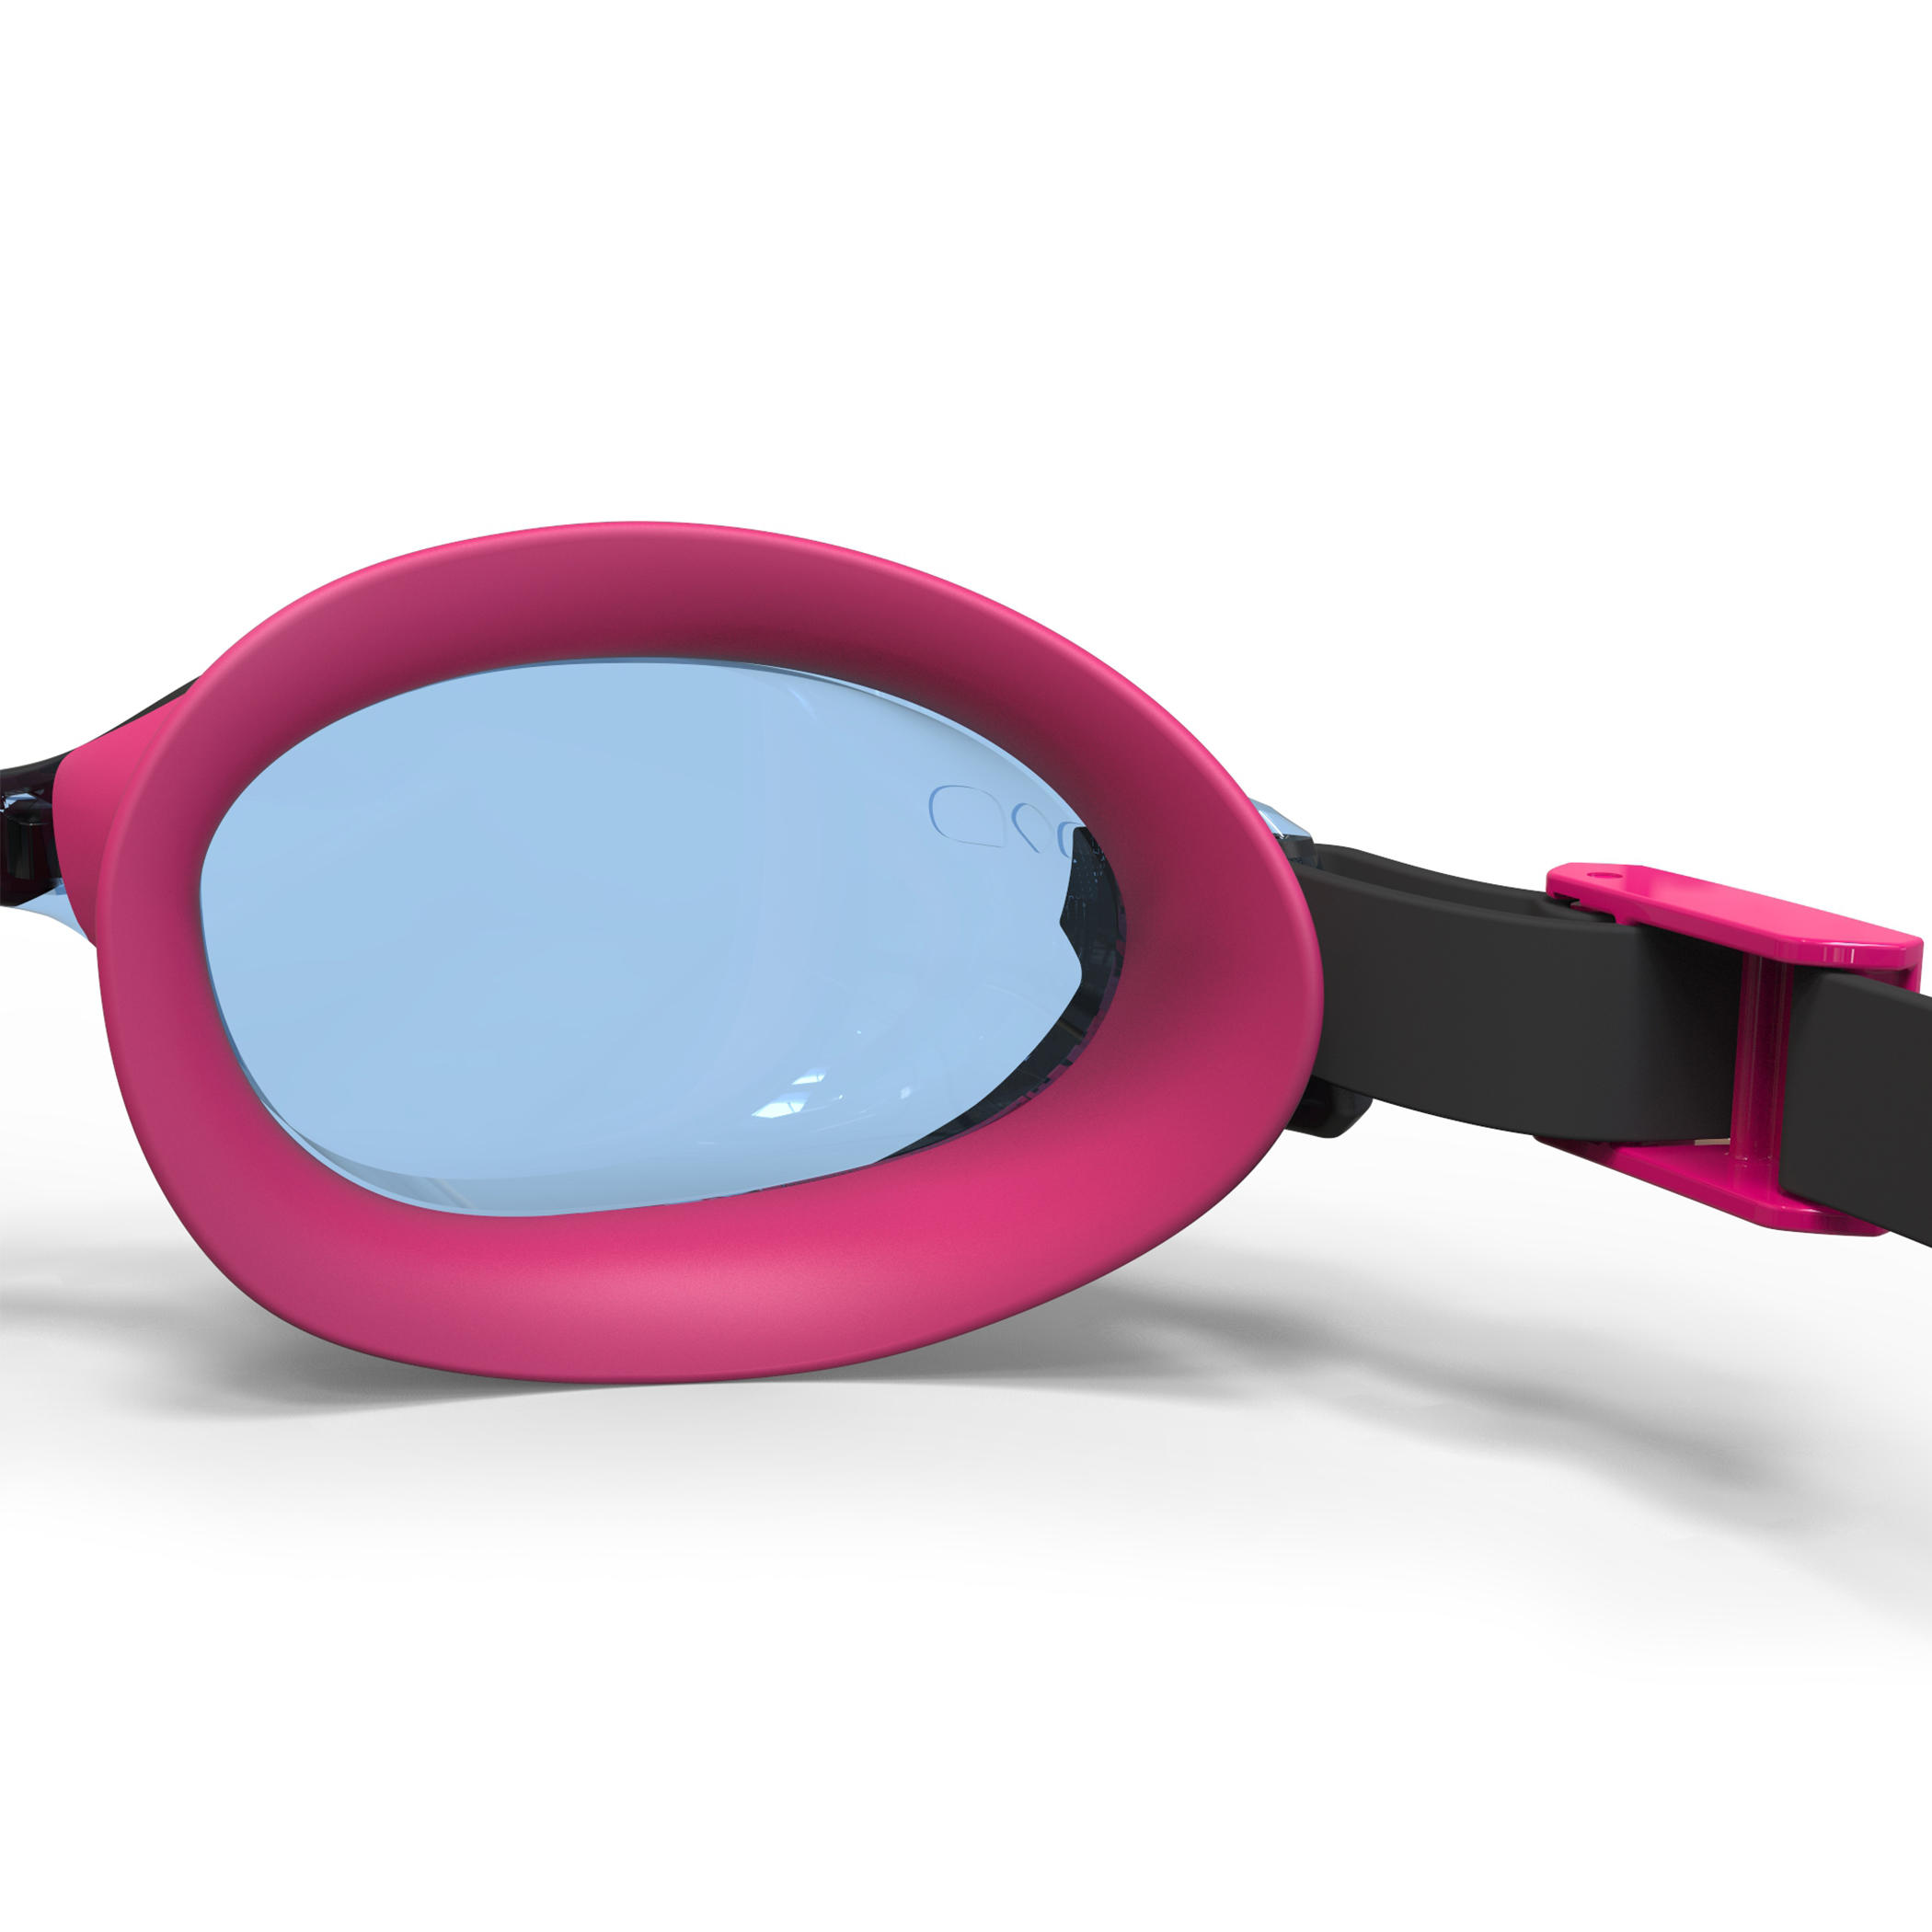 B-Fit Swimming Goggles - Pink